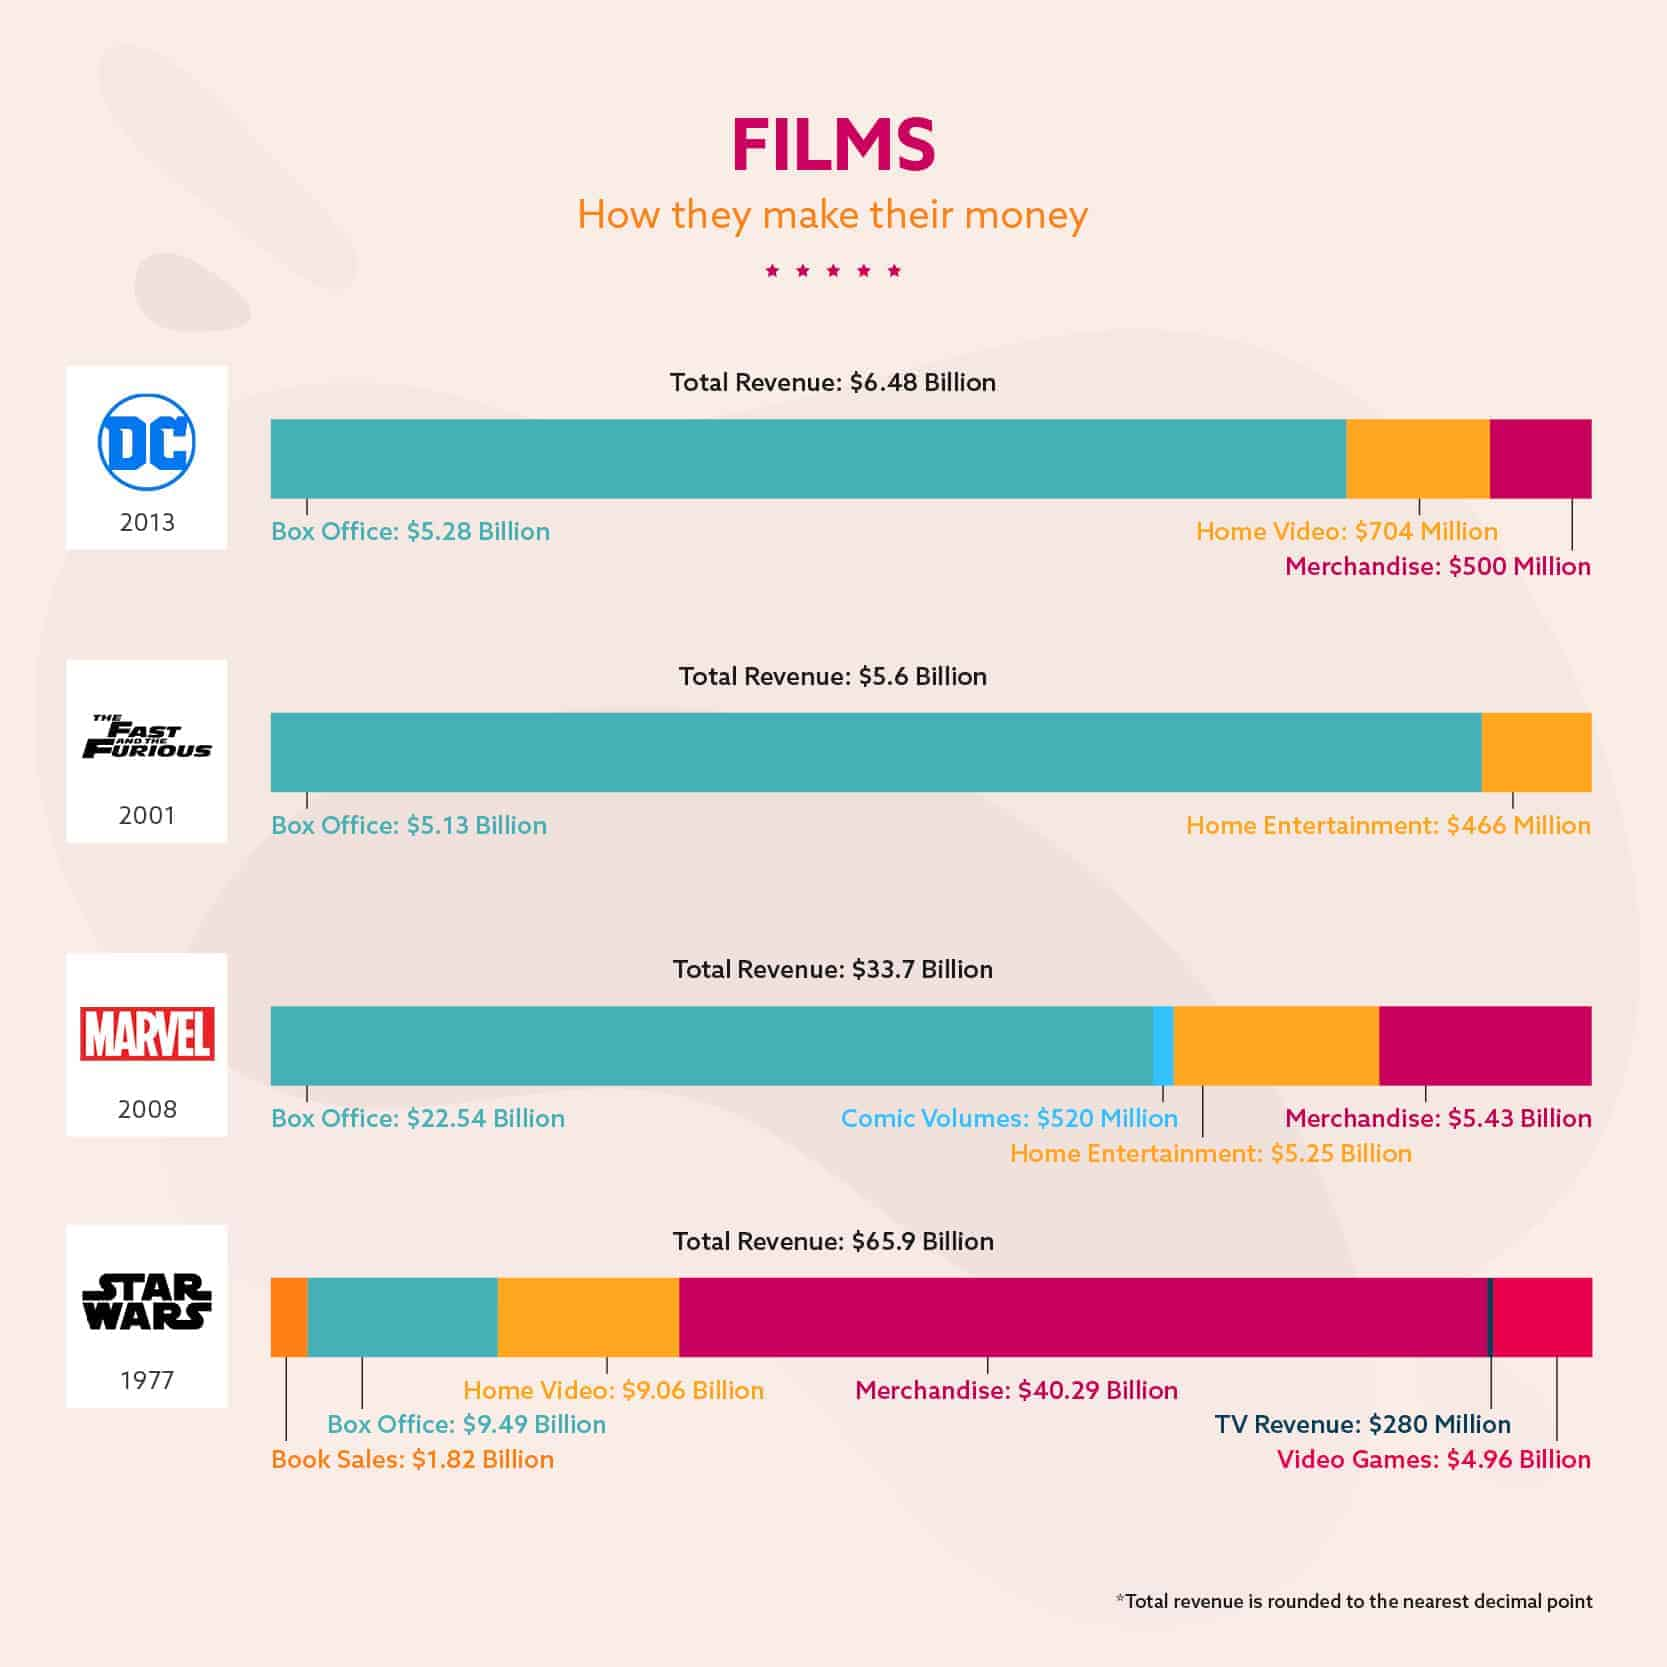 Films – How They Make Their Money